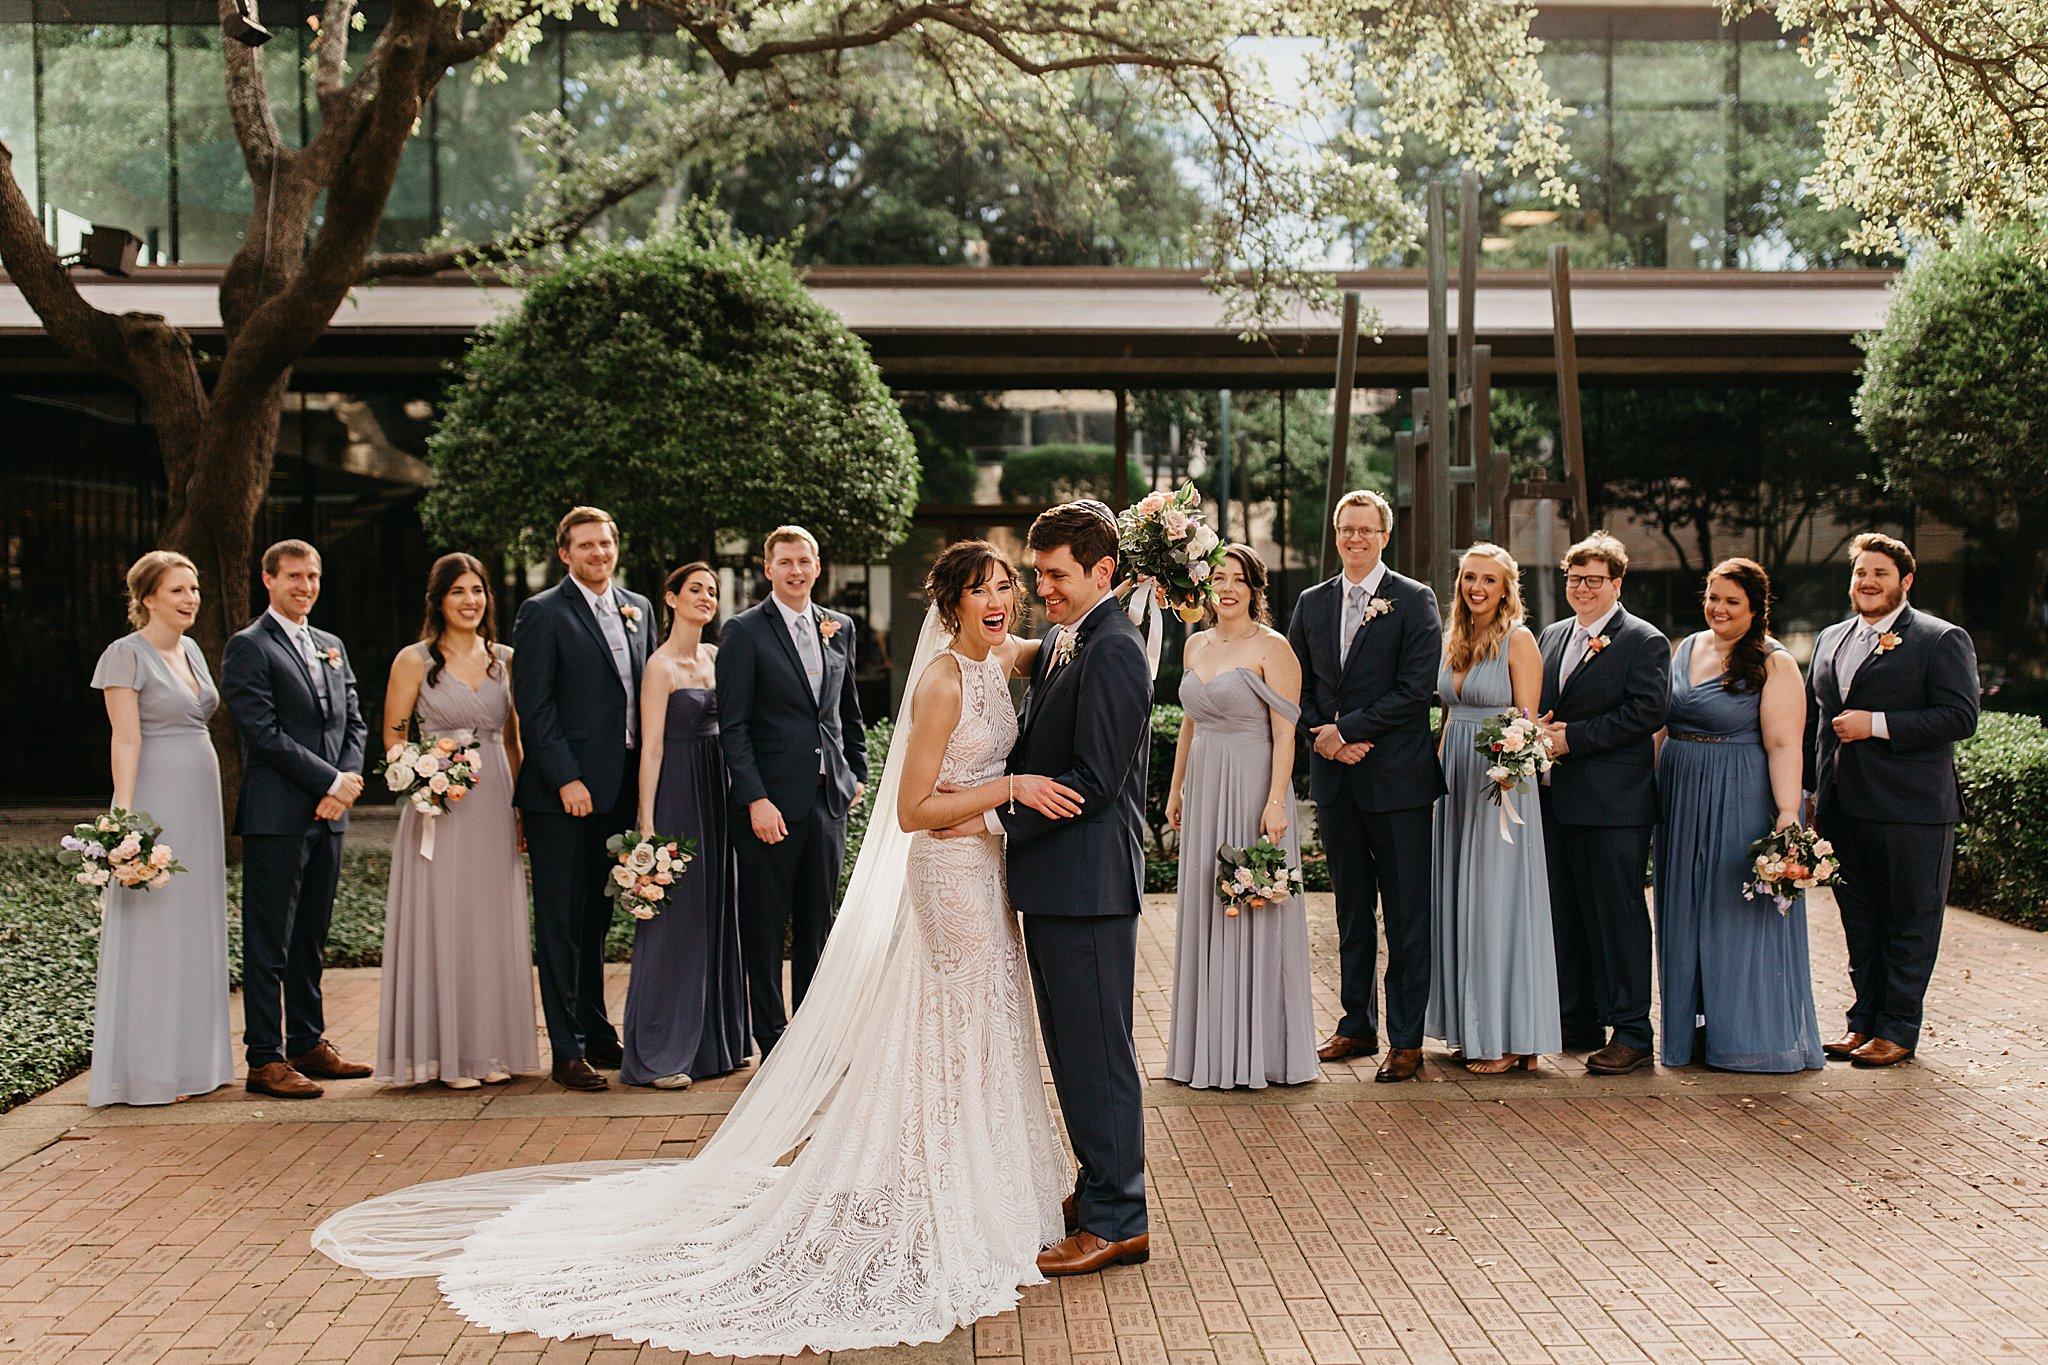 Wilderlove Co_Wedding Photographer_Industrial Wedding_Jewish Wedding_Dallas Texas Wedding_Brake & Clutch Warehouse_North Texas Photographer_0055.jpg